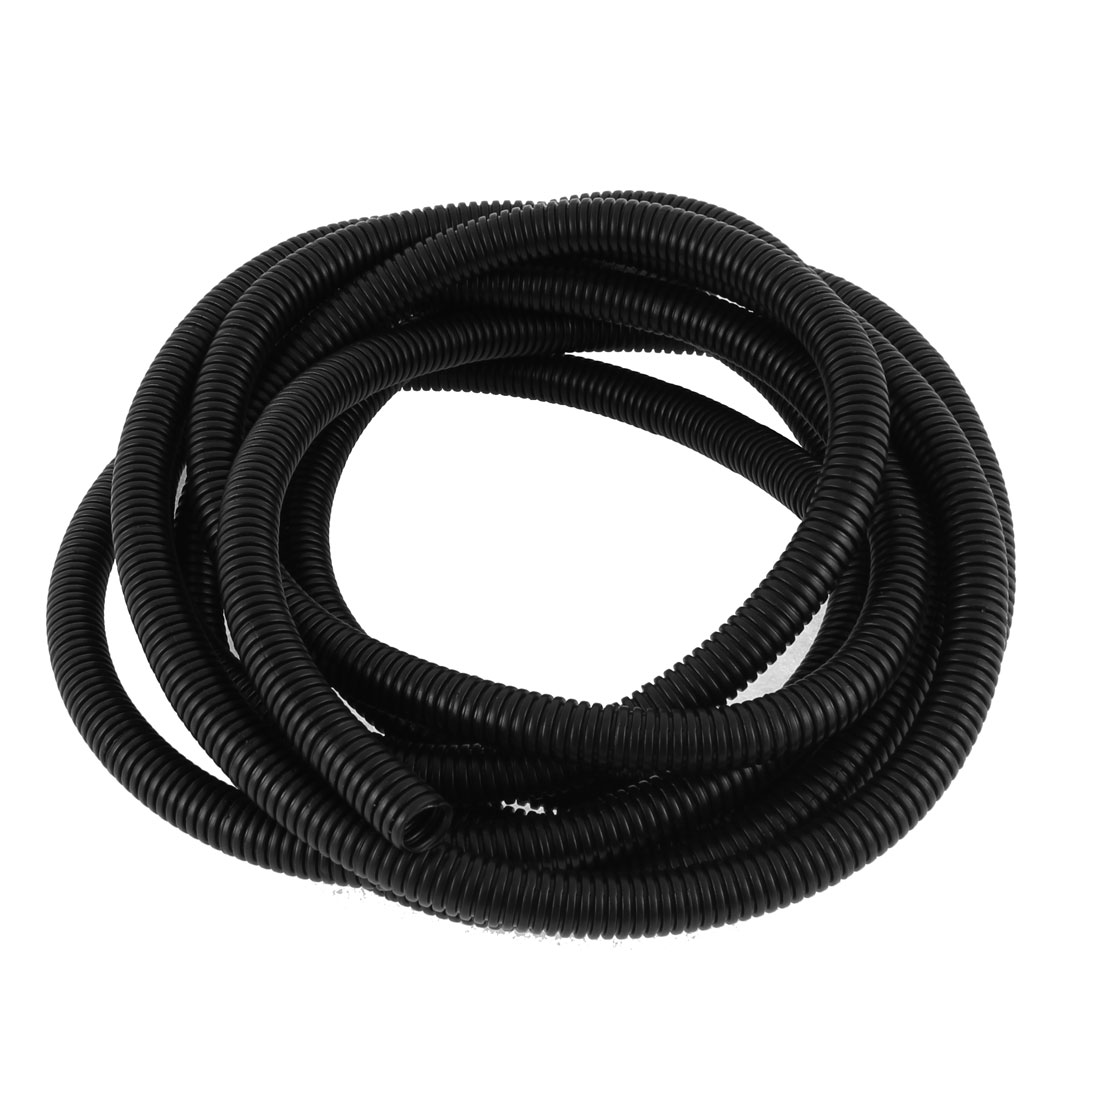 3.8M 12.5ft Long 13mm x 10mm Black PVC Flexible Corrugated Tubing Wire Cable Conduit Tube Pipe